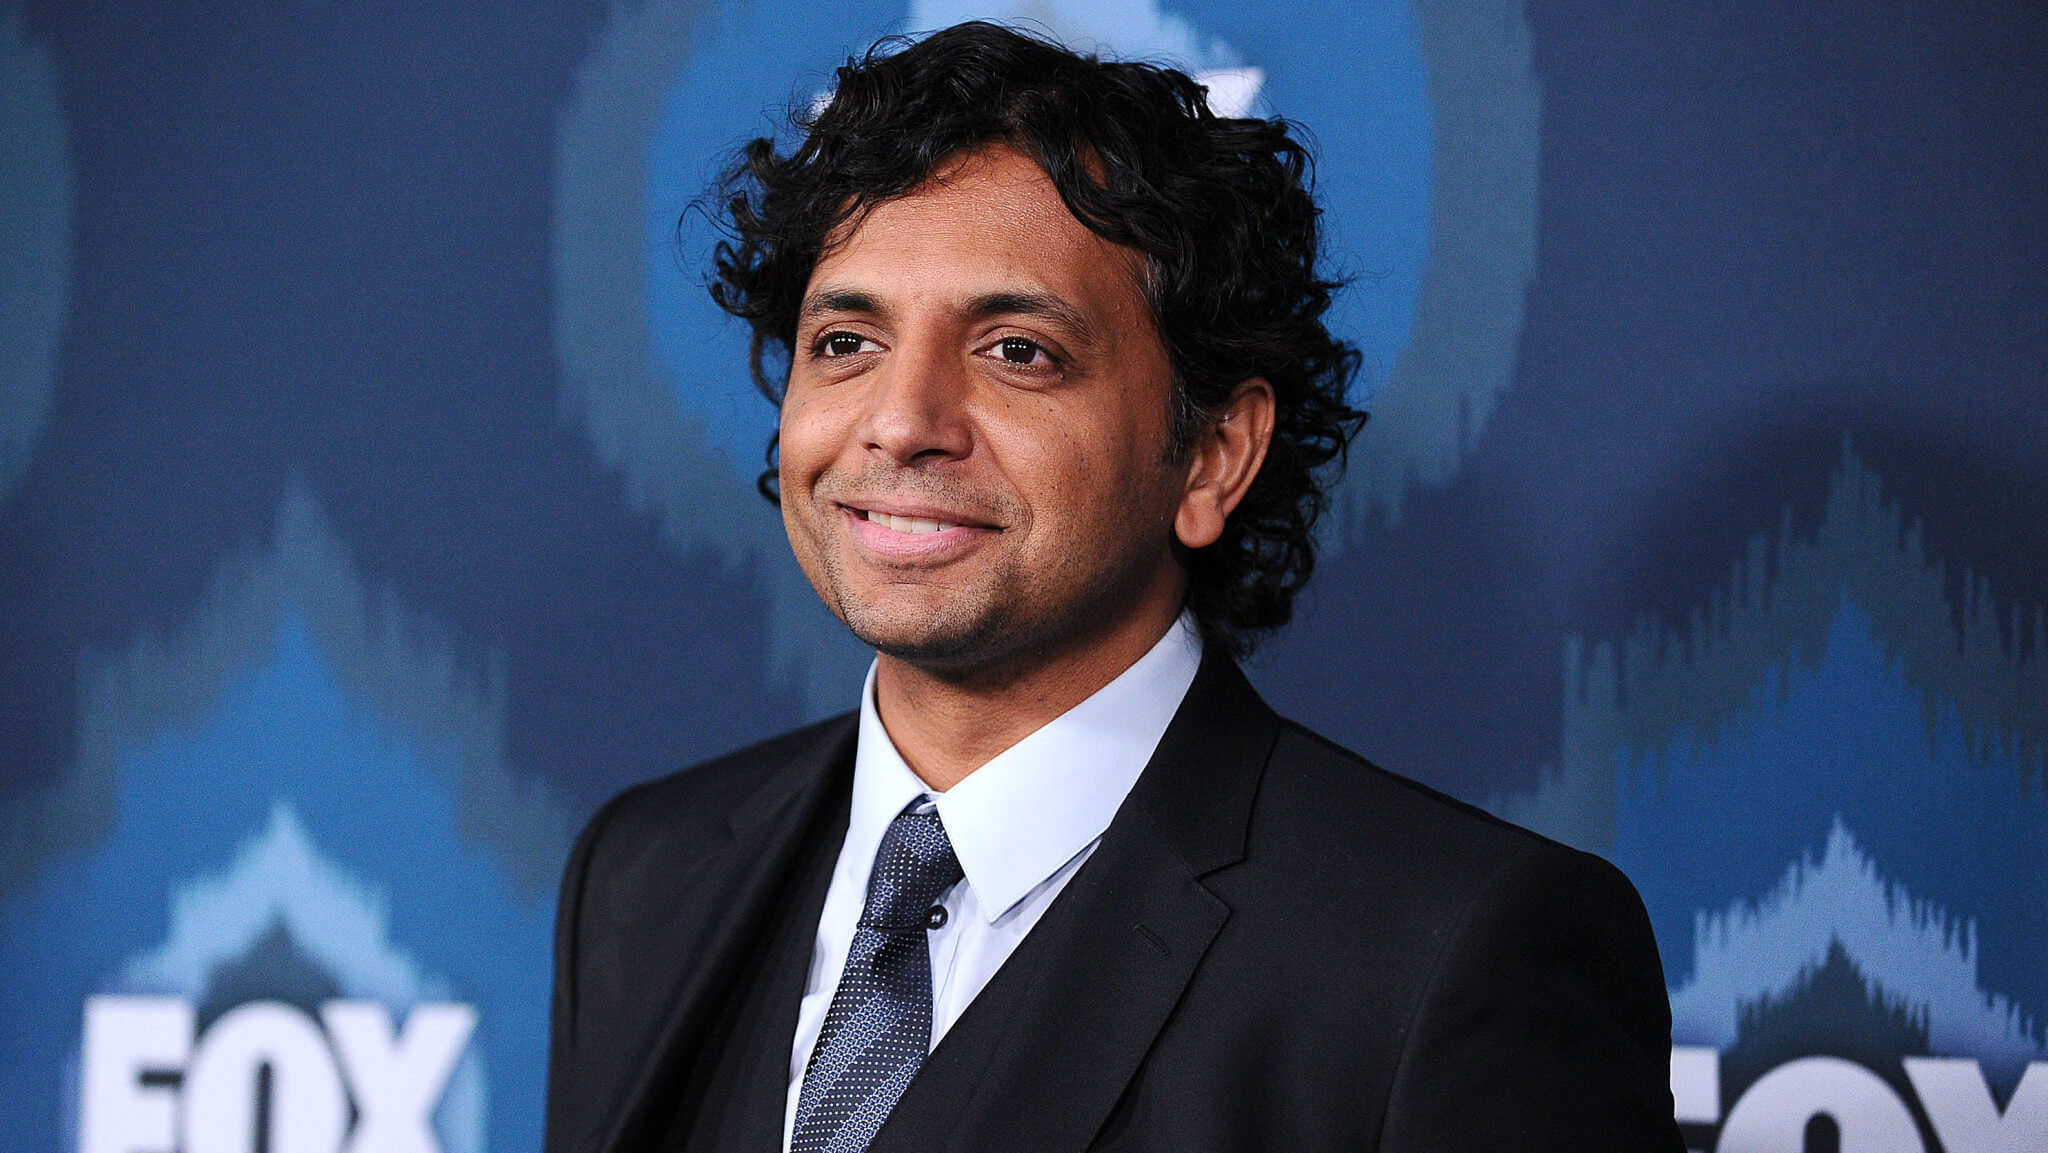 Inside The Screen Colour Explained By M. Night Shyamalan